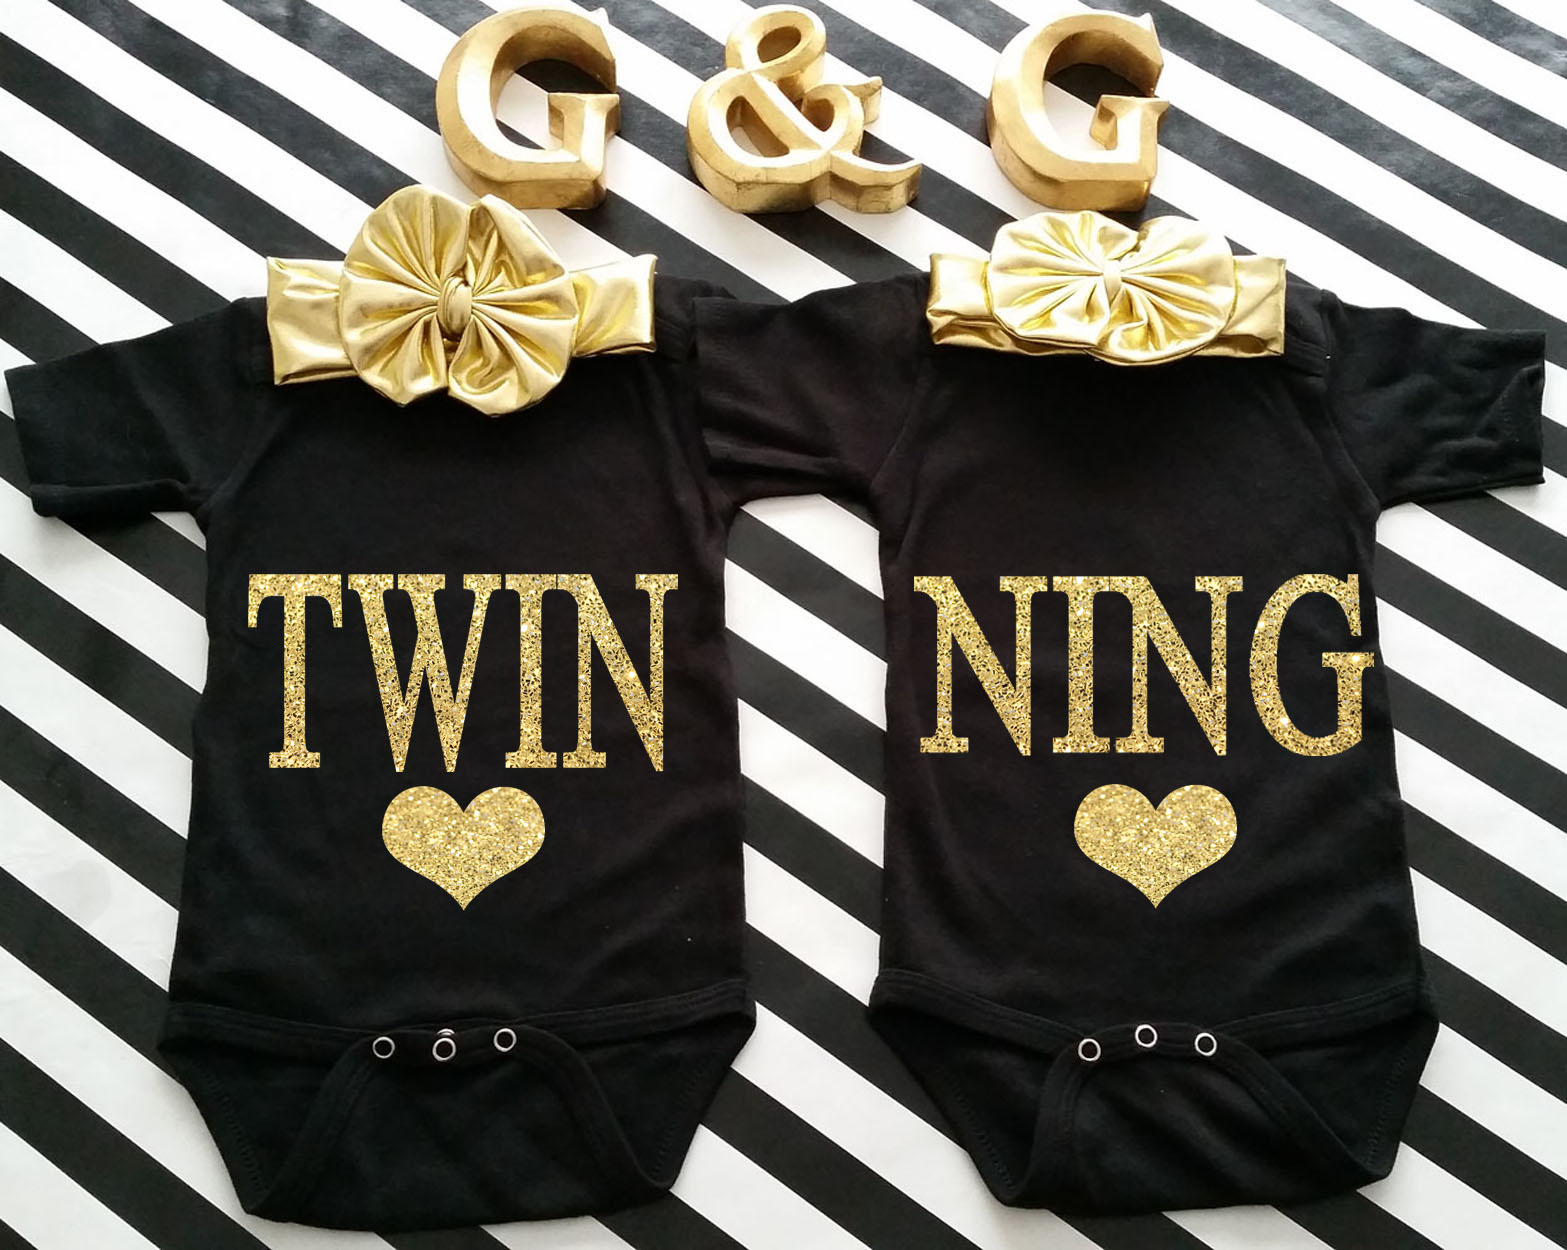 Black and Gold Glitter Twinning Boy and Girl Matching Shirts